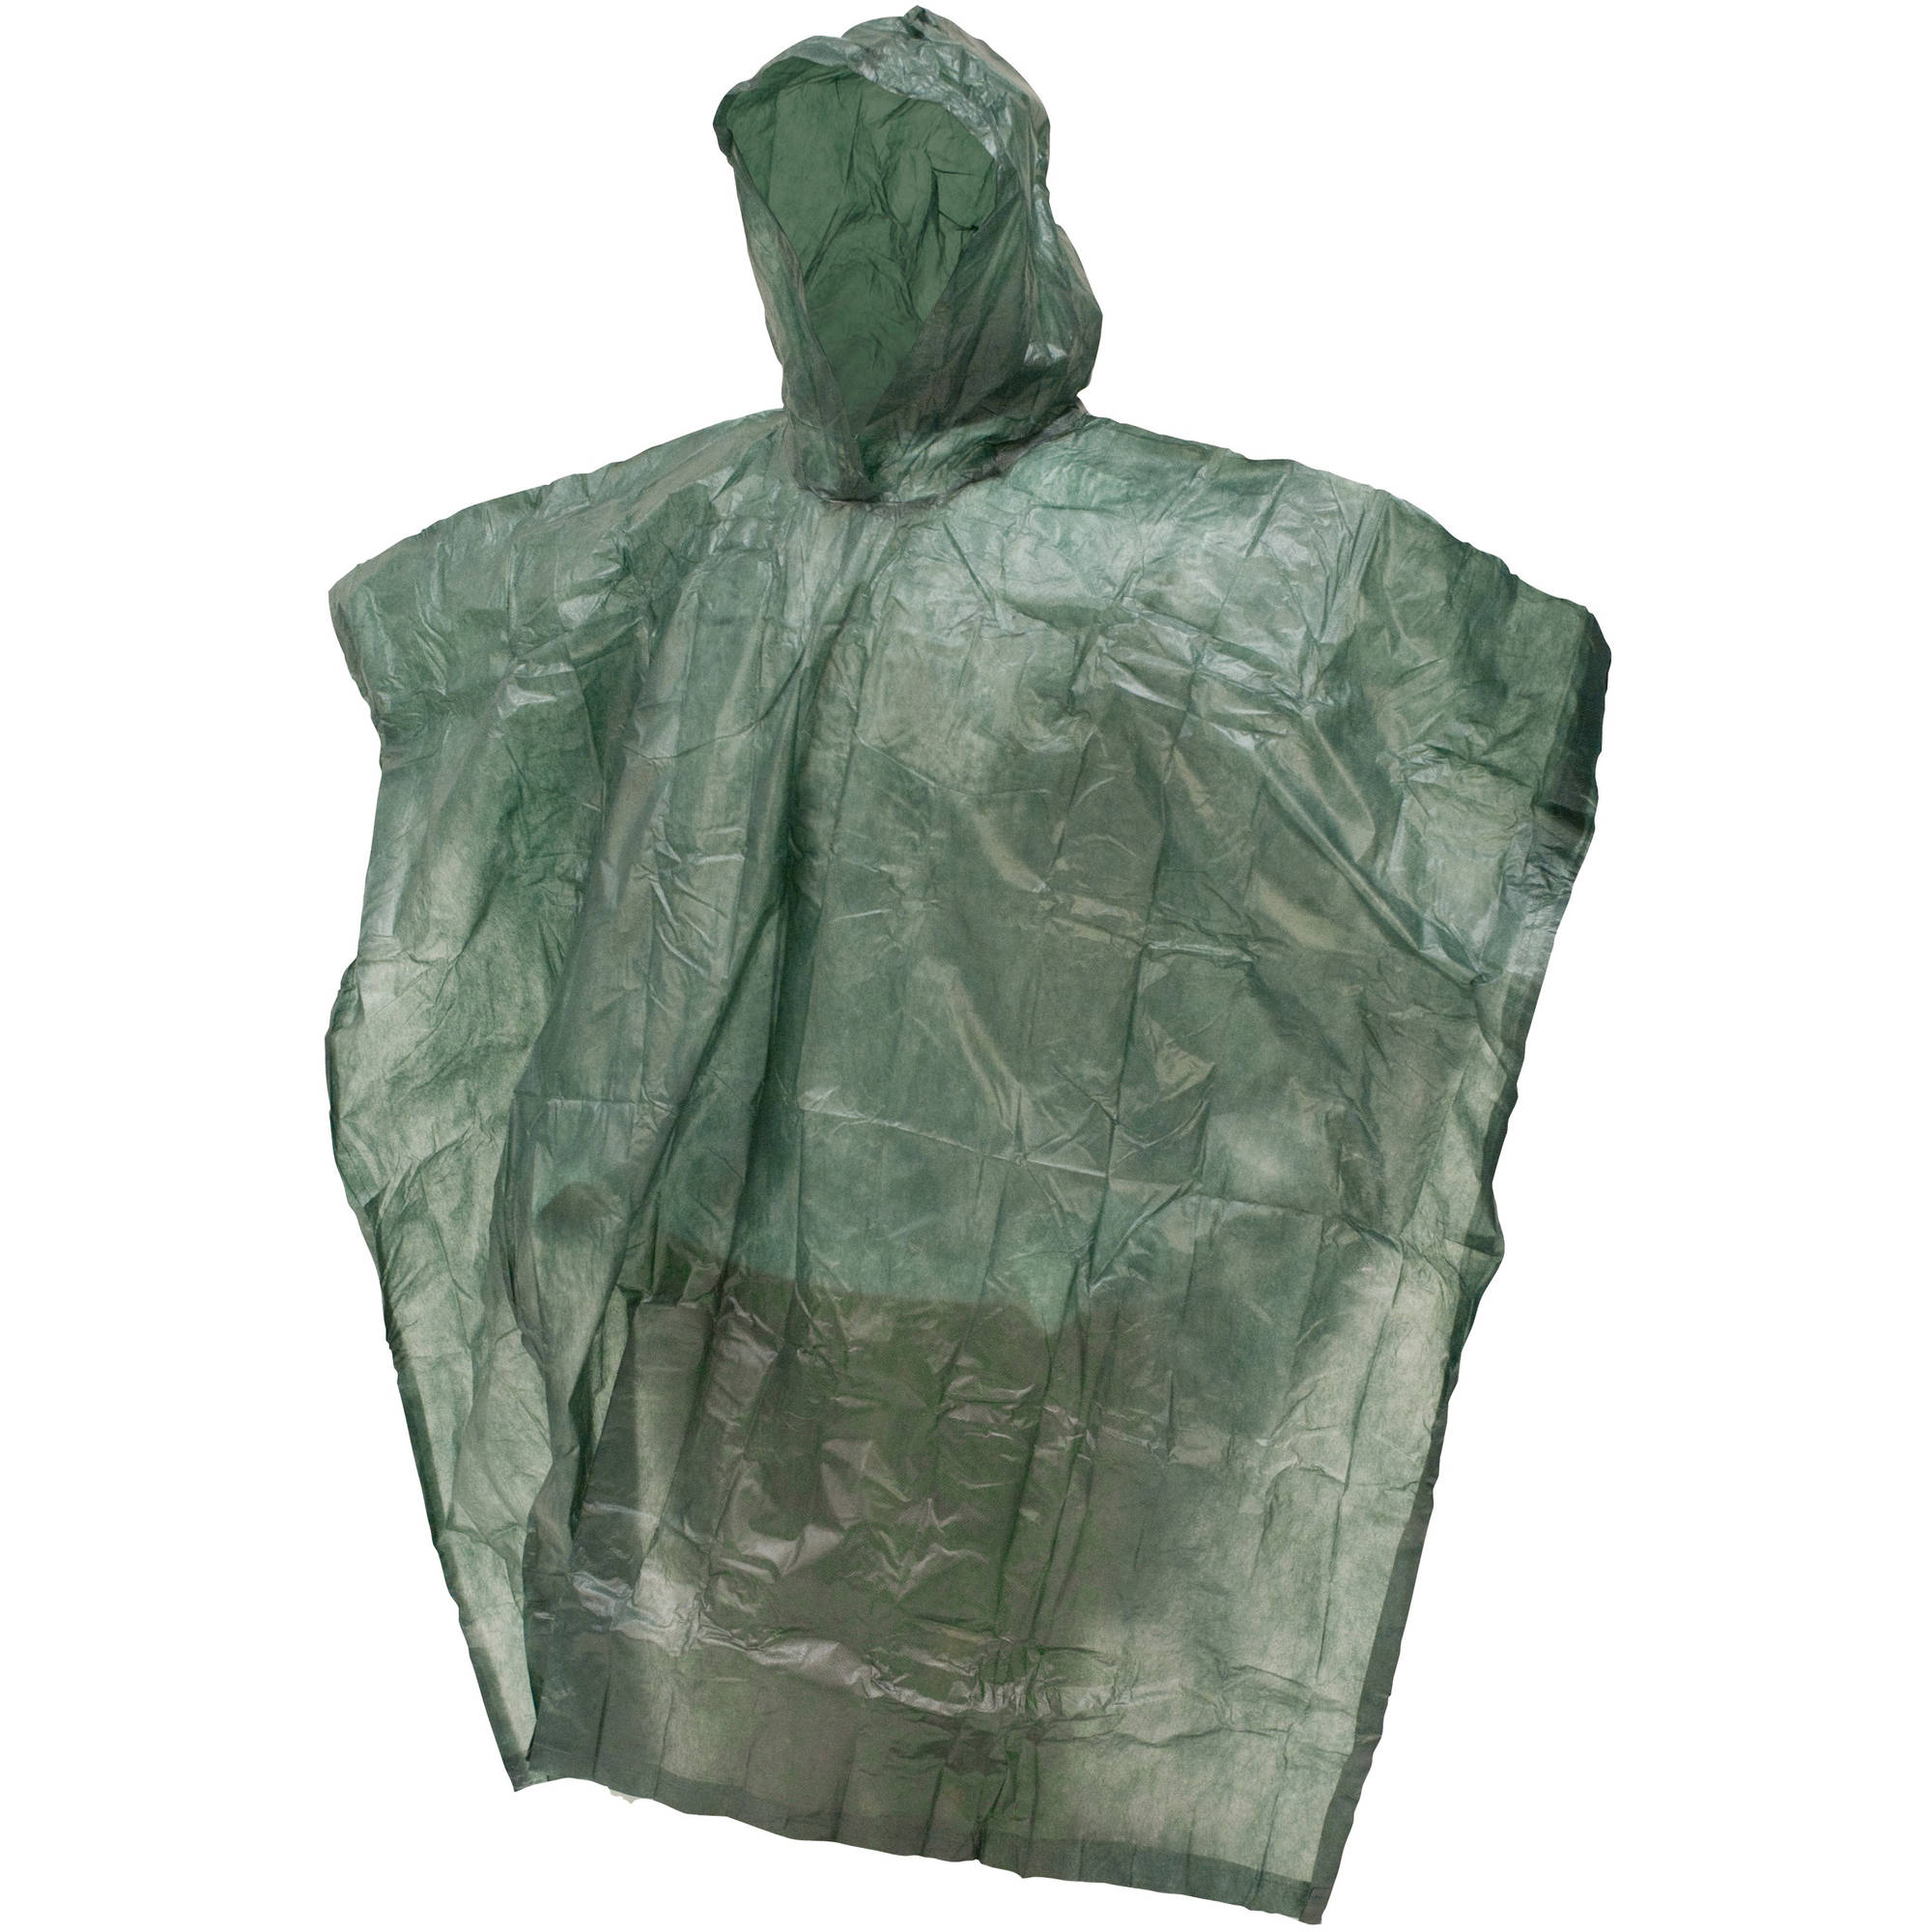 Frogg Toggs Poncho by Frogg Toggs